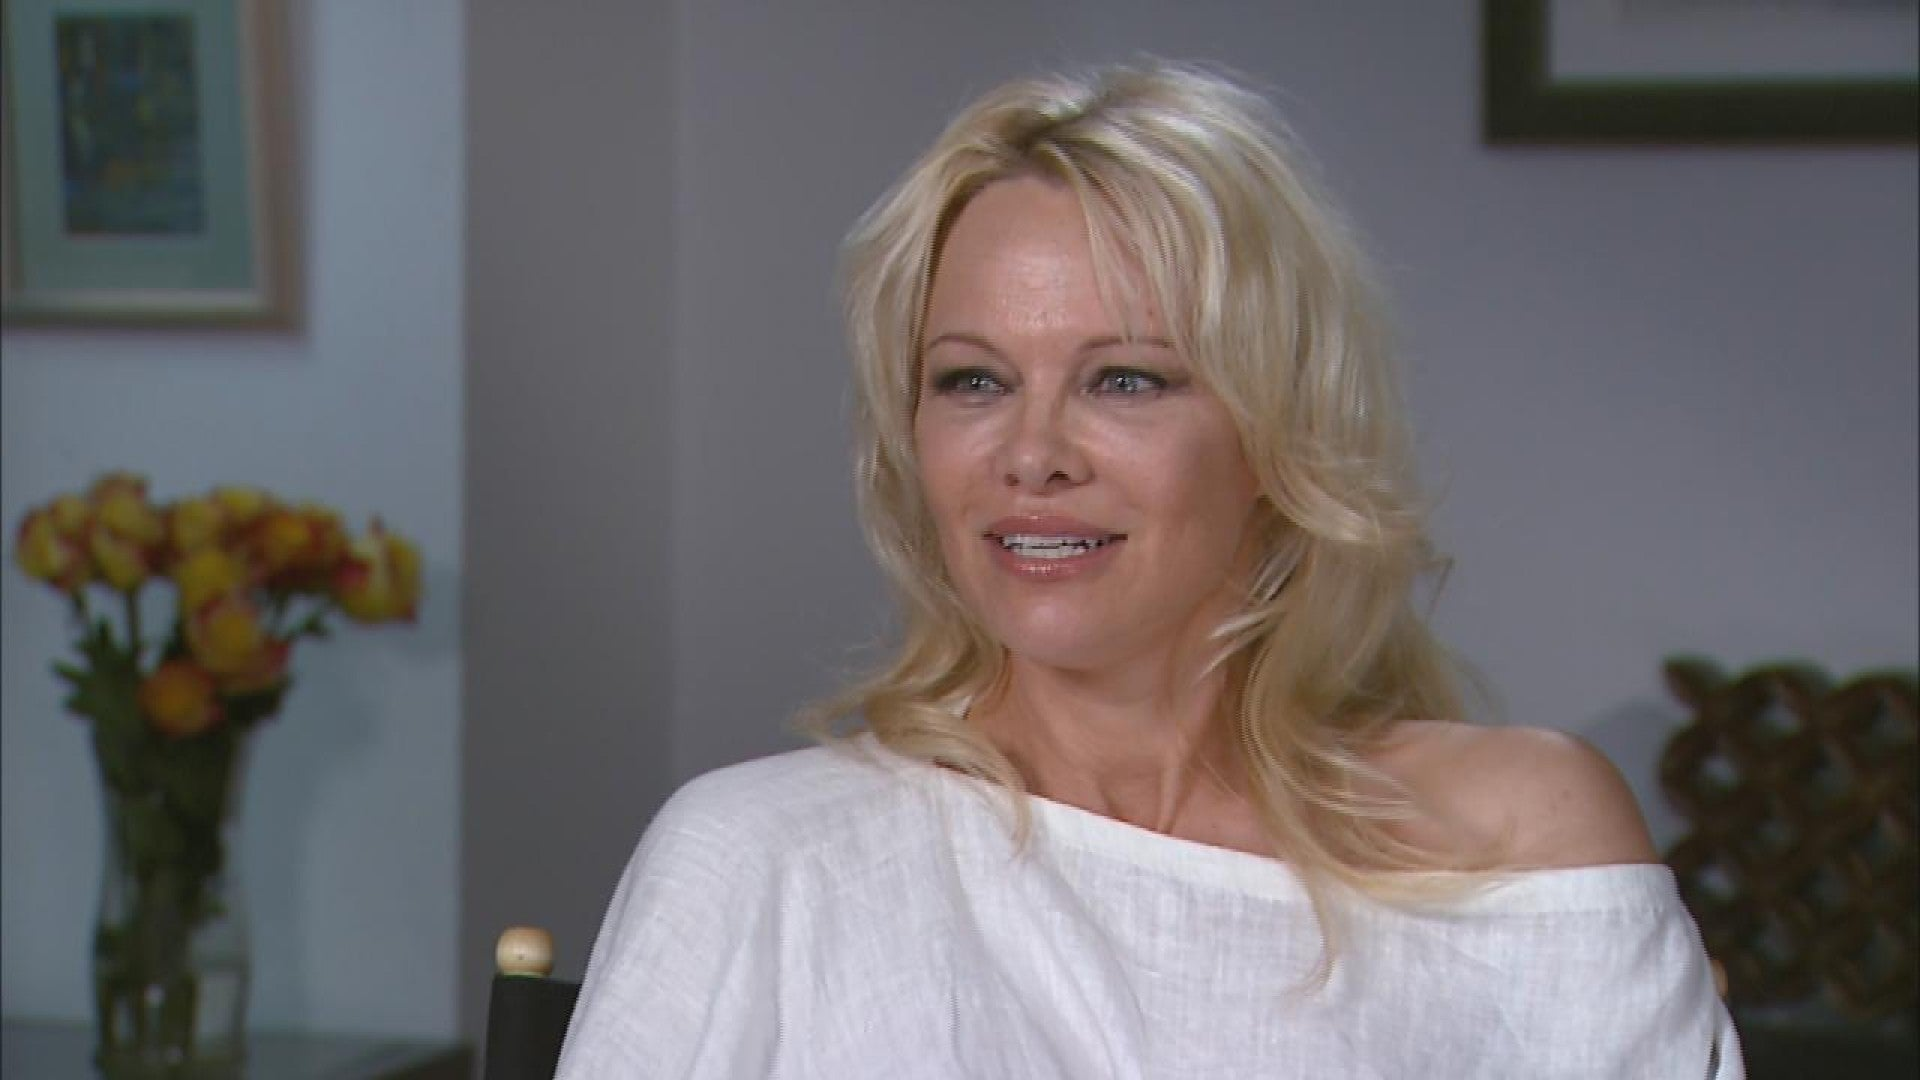 pamela-anderson-marries-her-bodyguard-after-falling-in-love-during-quarantine